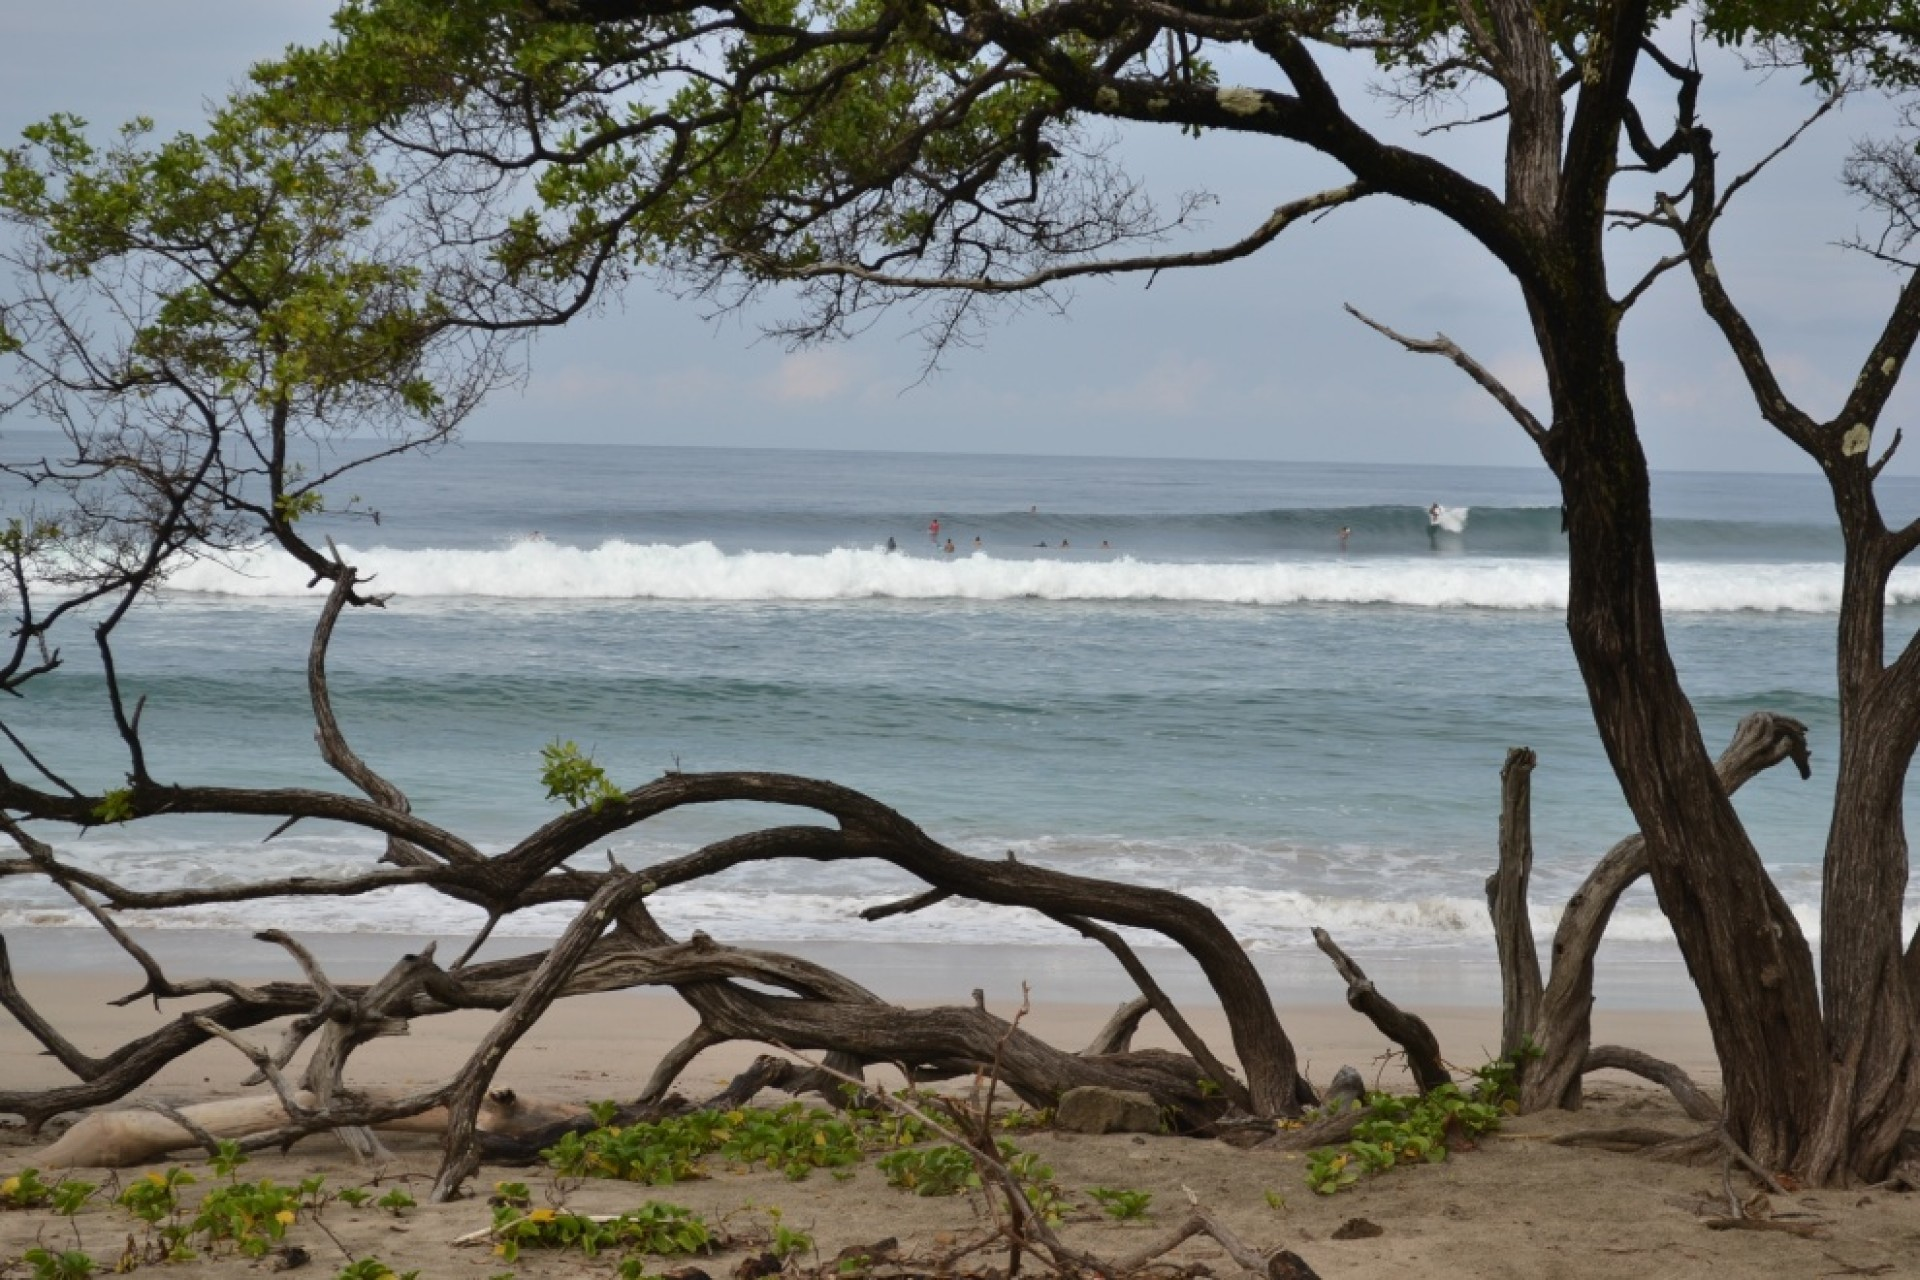 GreenTeam's photo of Playa Negra - Guanacaste